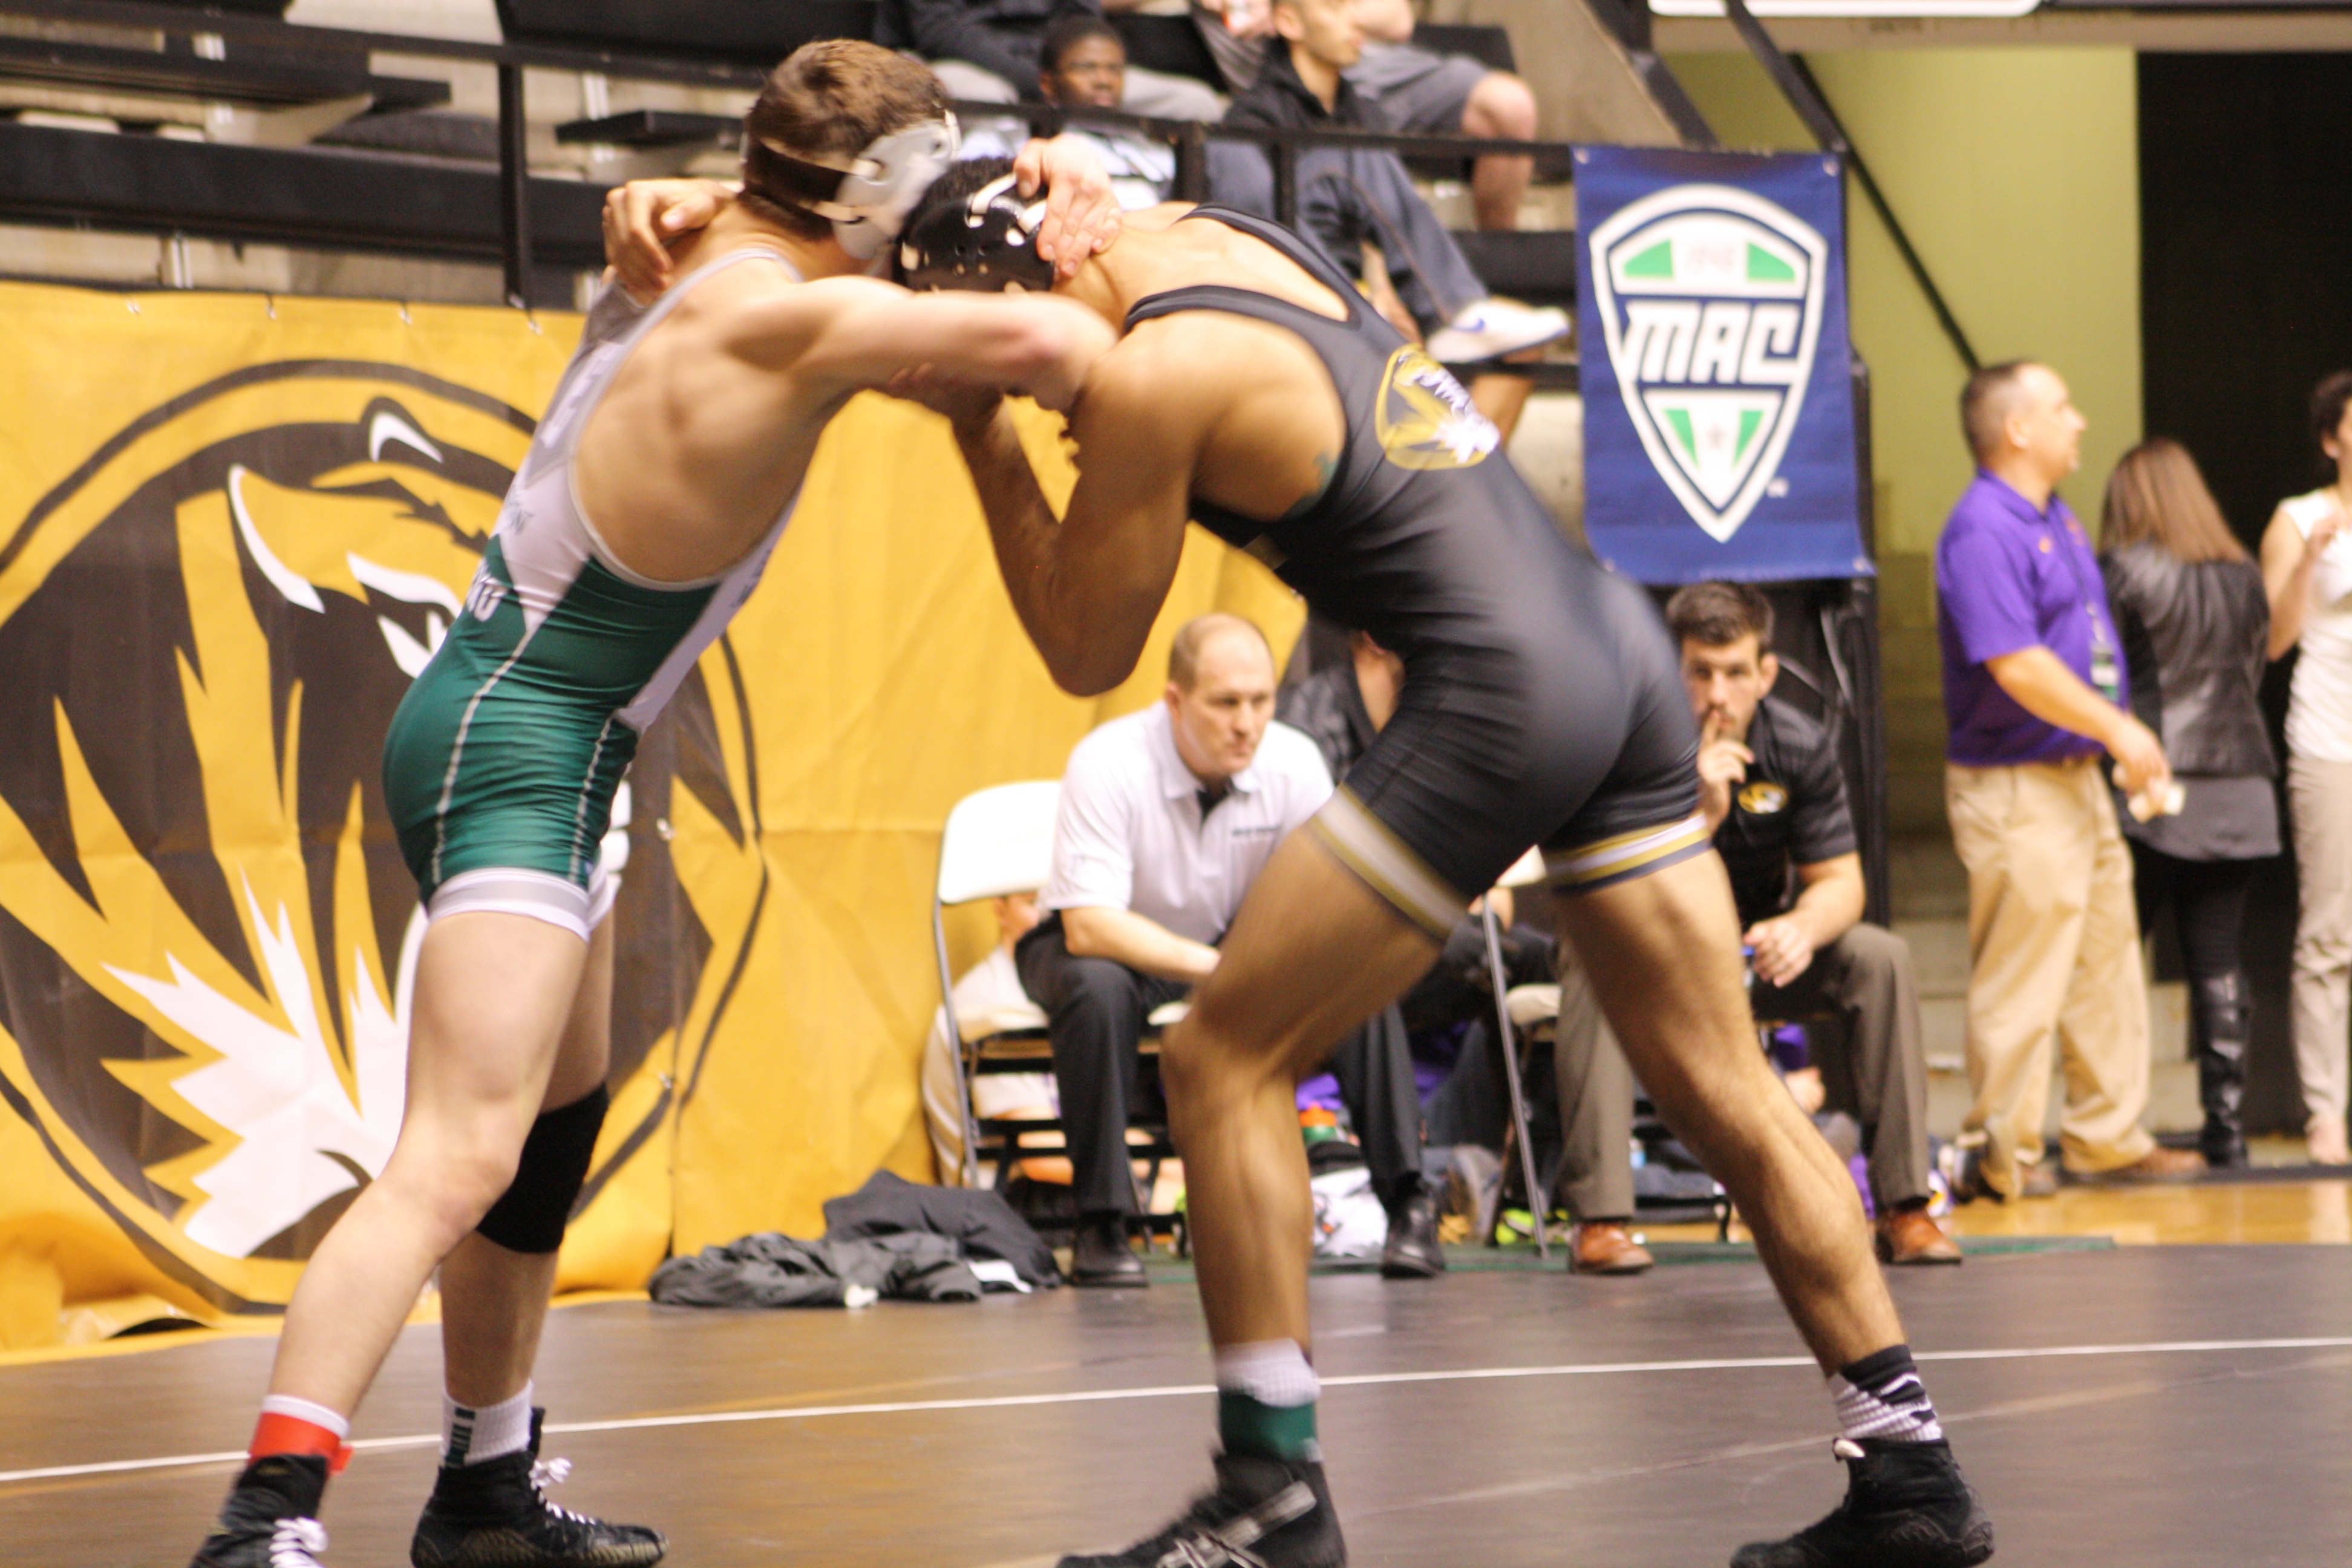 Lavion Mayes was pretty damn good at 141, but how would others do on the evening?